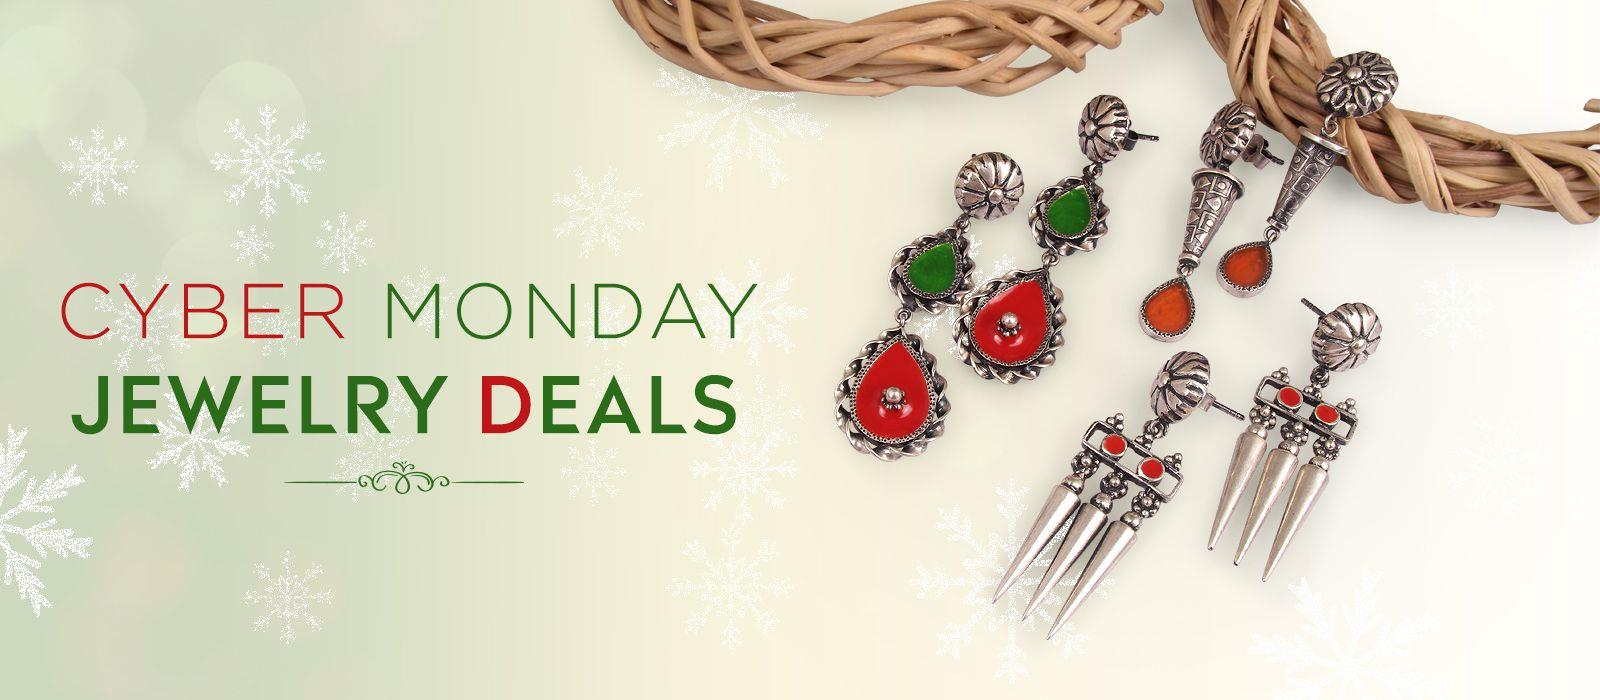 Cyber Monday jewelry deals 2020